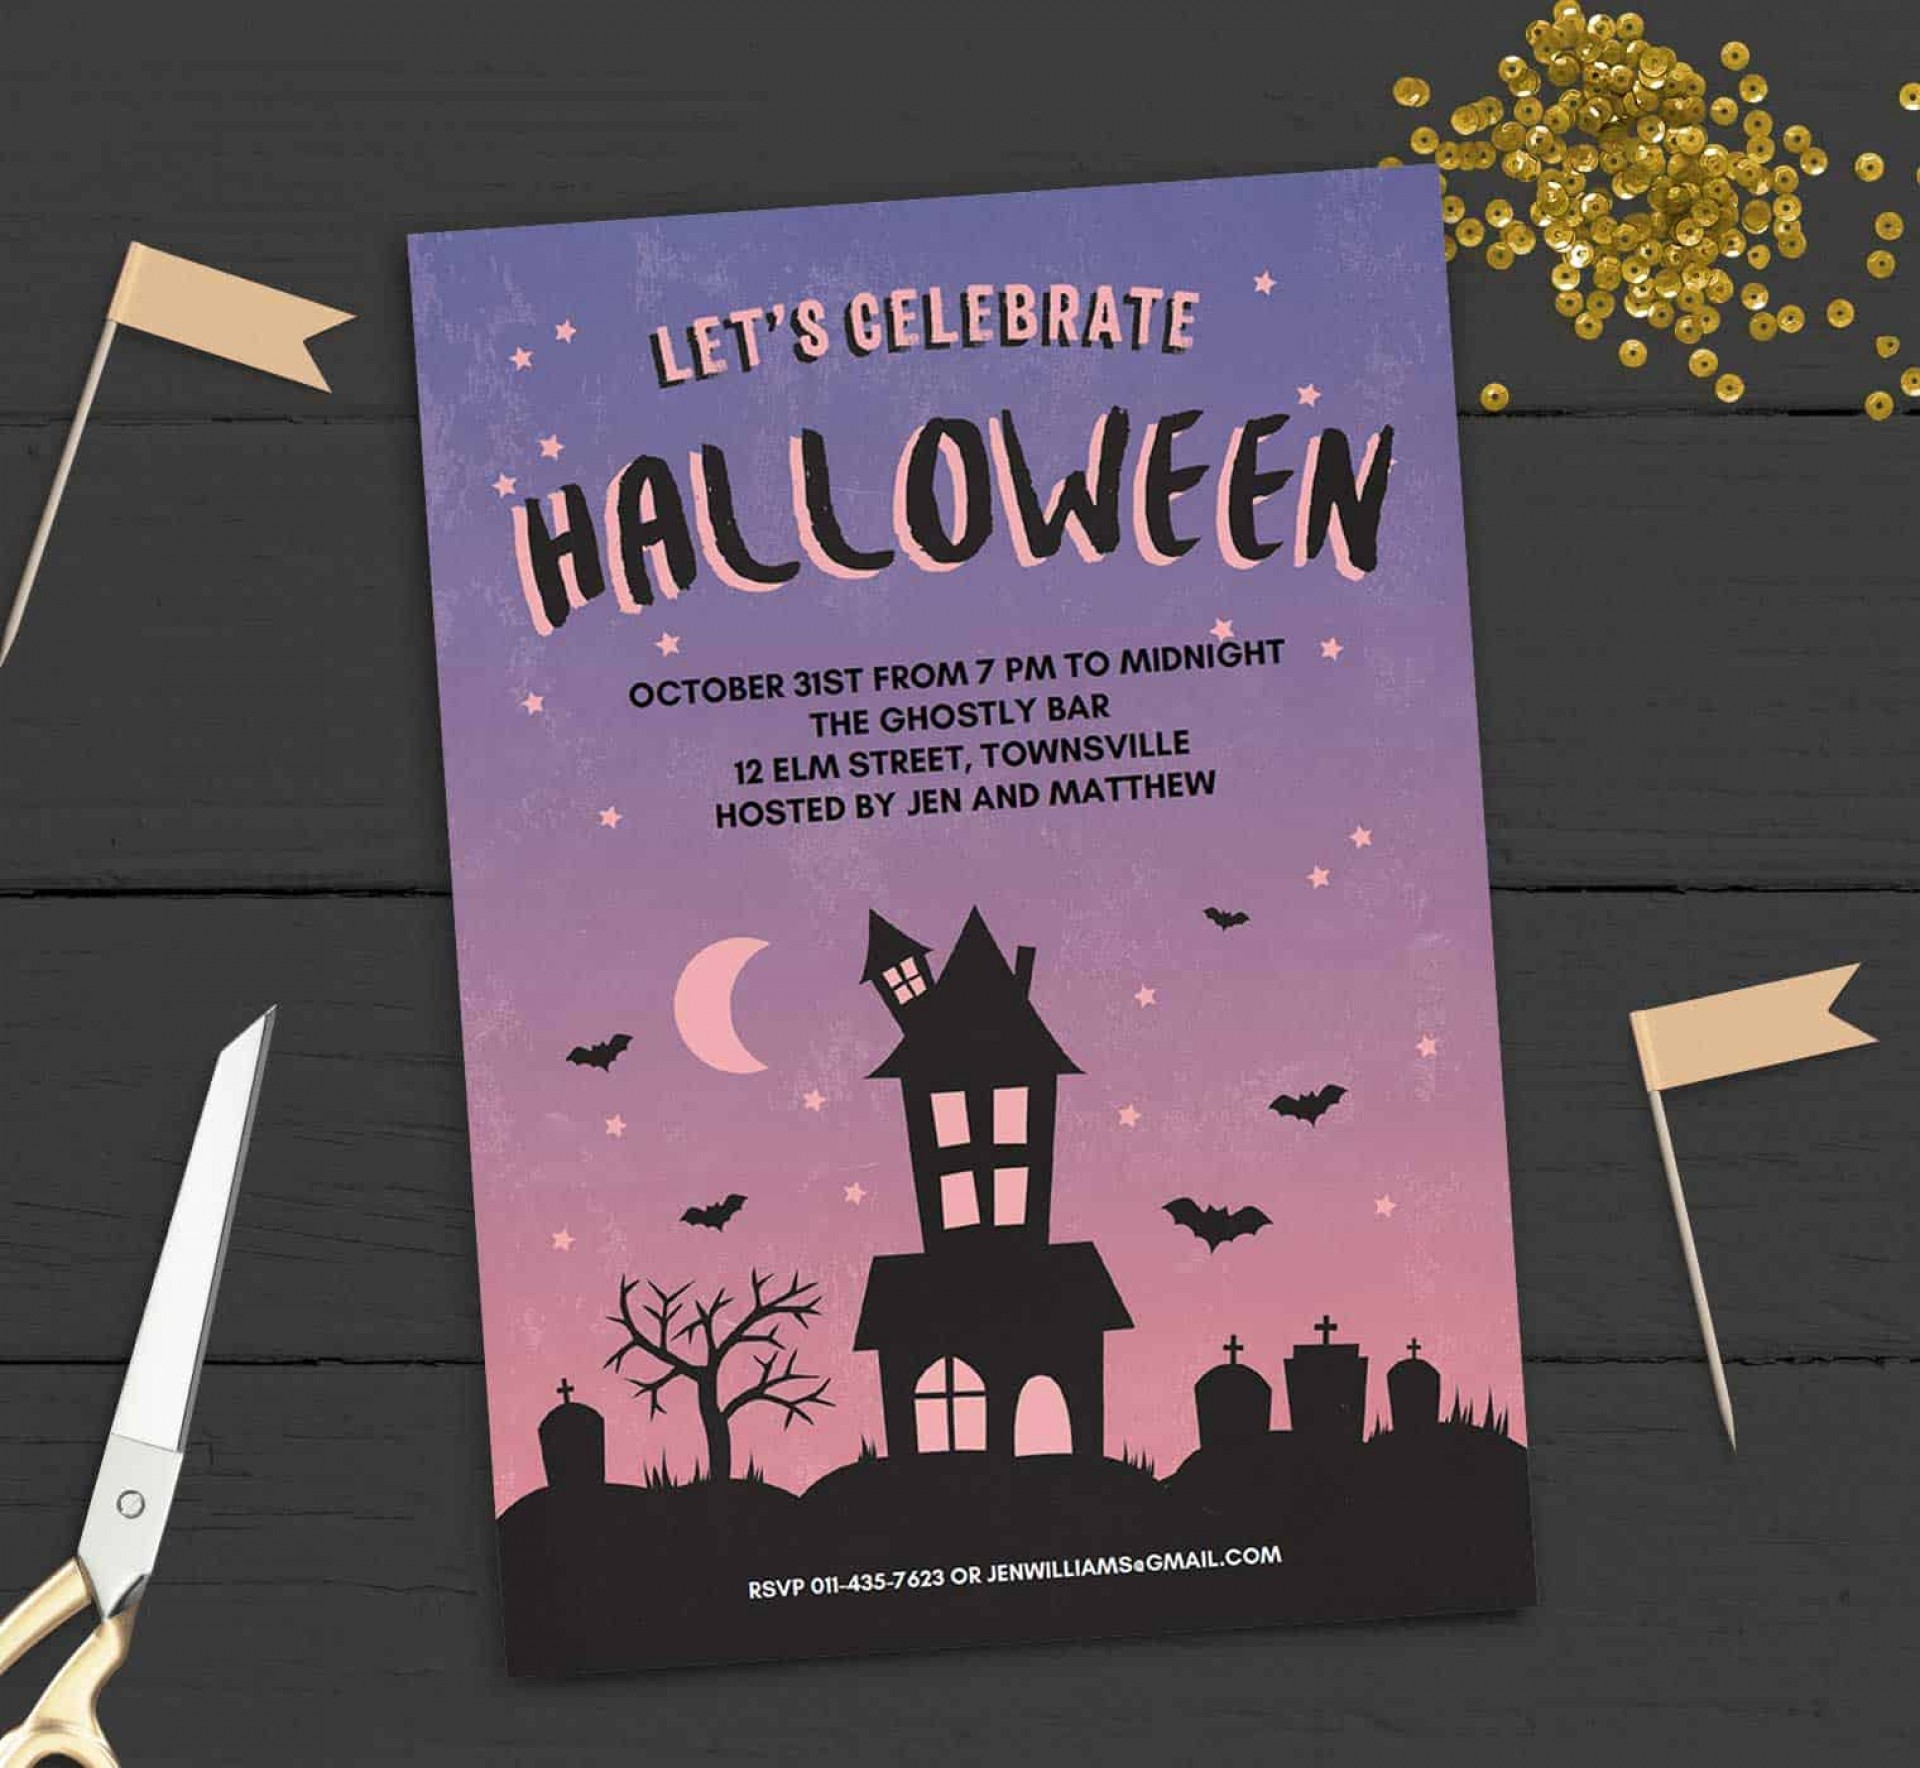 005 Stupendou Free Halloween Party Invitation Template Photo  Templates Download Printable Birthday1920